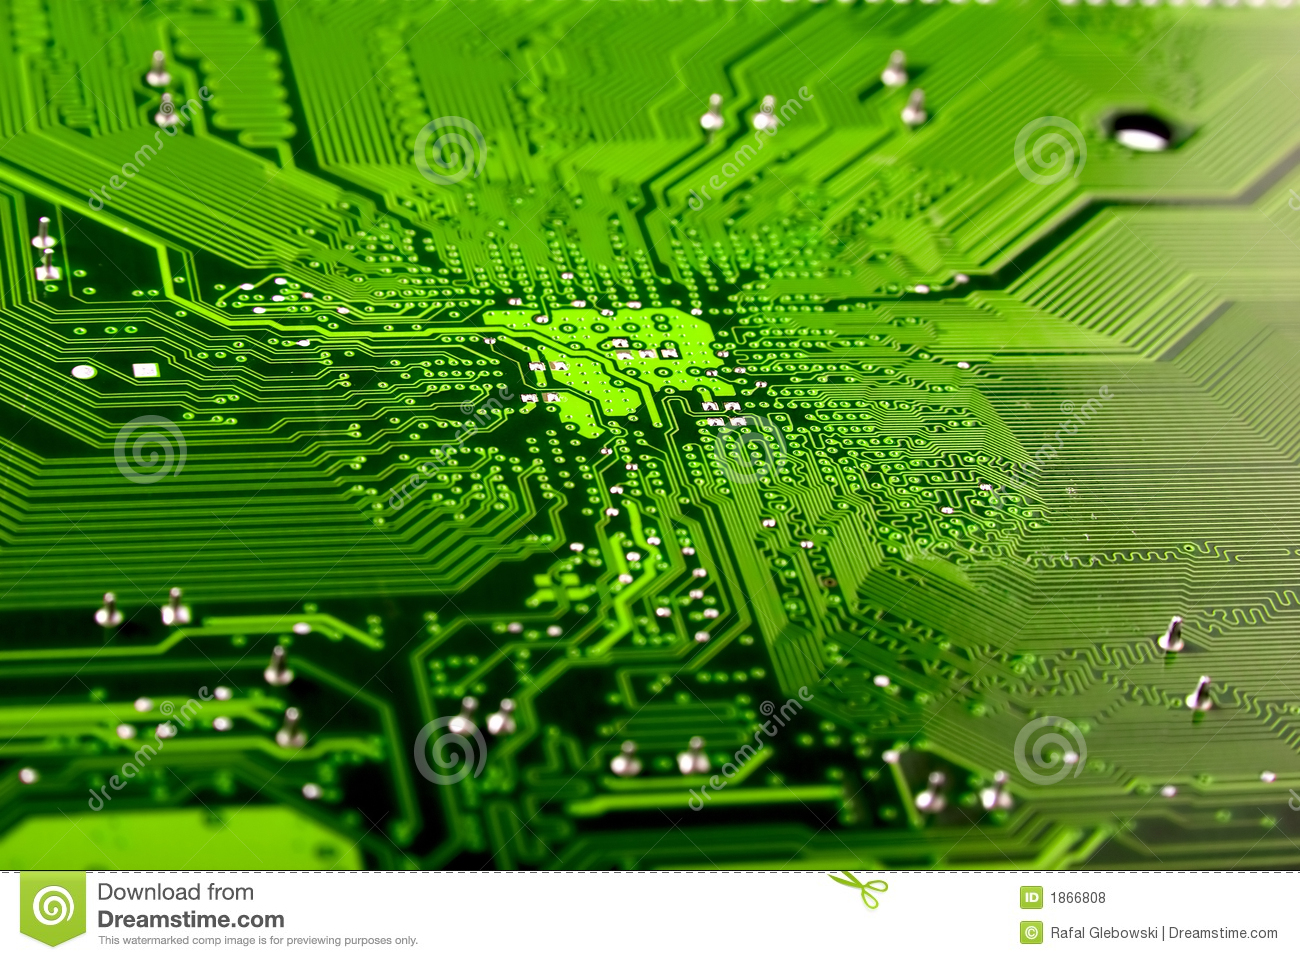 Royalty Free Stock Images Electronic Logo Chip Vector  panies Dealing Electrician Image31913969 in addition Circuit Print For Electronic Products 34643 in addition Royalty Free Stock Photos Motherboard Abstract Background Old  puter Circuit Board Image33622268 in addition Wedding Cards Design Studio In Pakistan together with Power Supply Electronics Projects. on electronic circuit design free